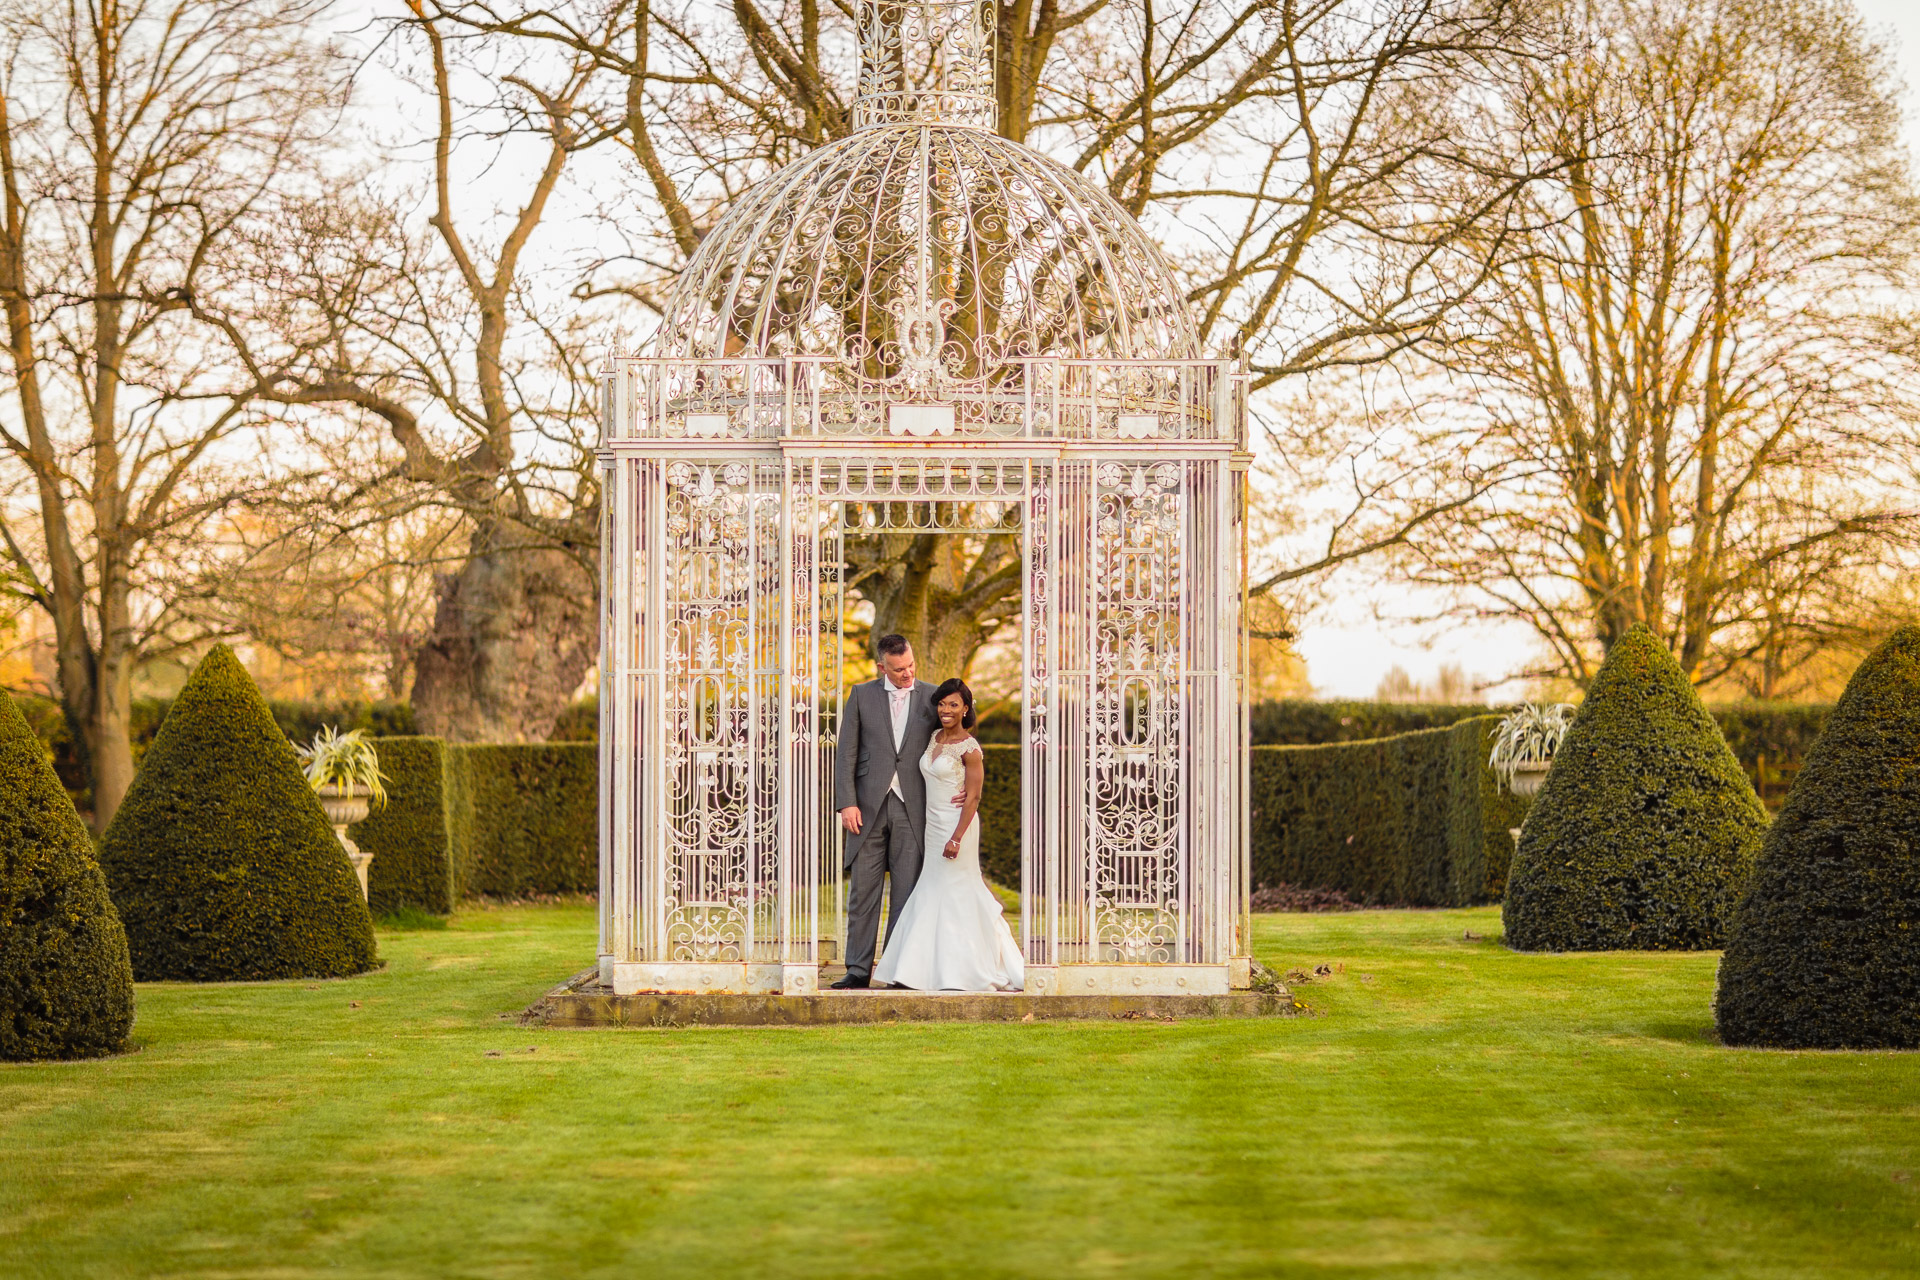 Wedding in Chenies Manor, Rickmansworth